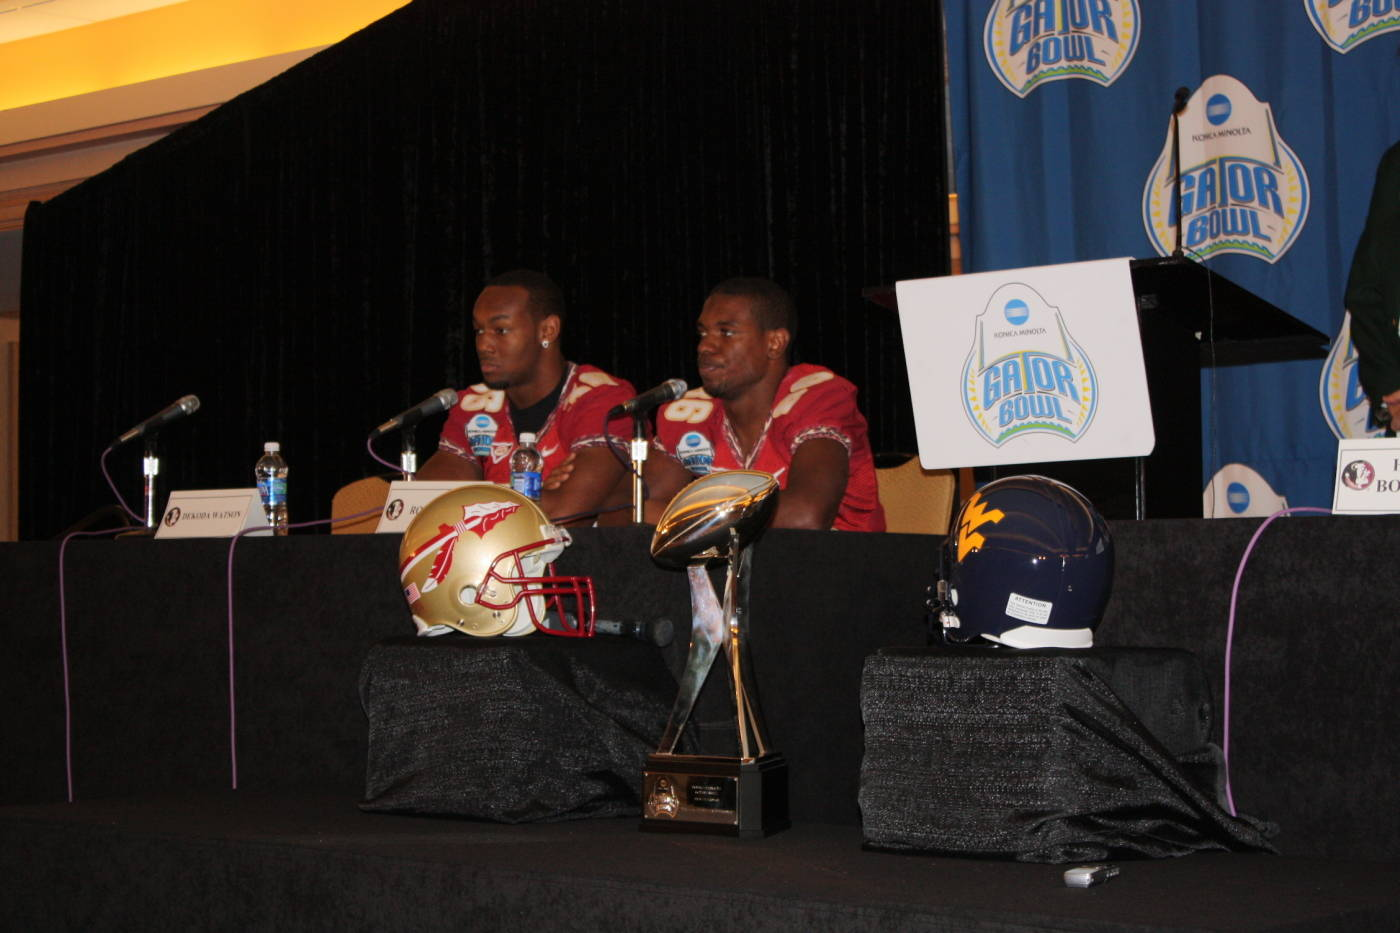 Rod Owens and Dekoda Watson at the Gator Bowl coaches and players press conference at the Hyatt in Jacksonville.